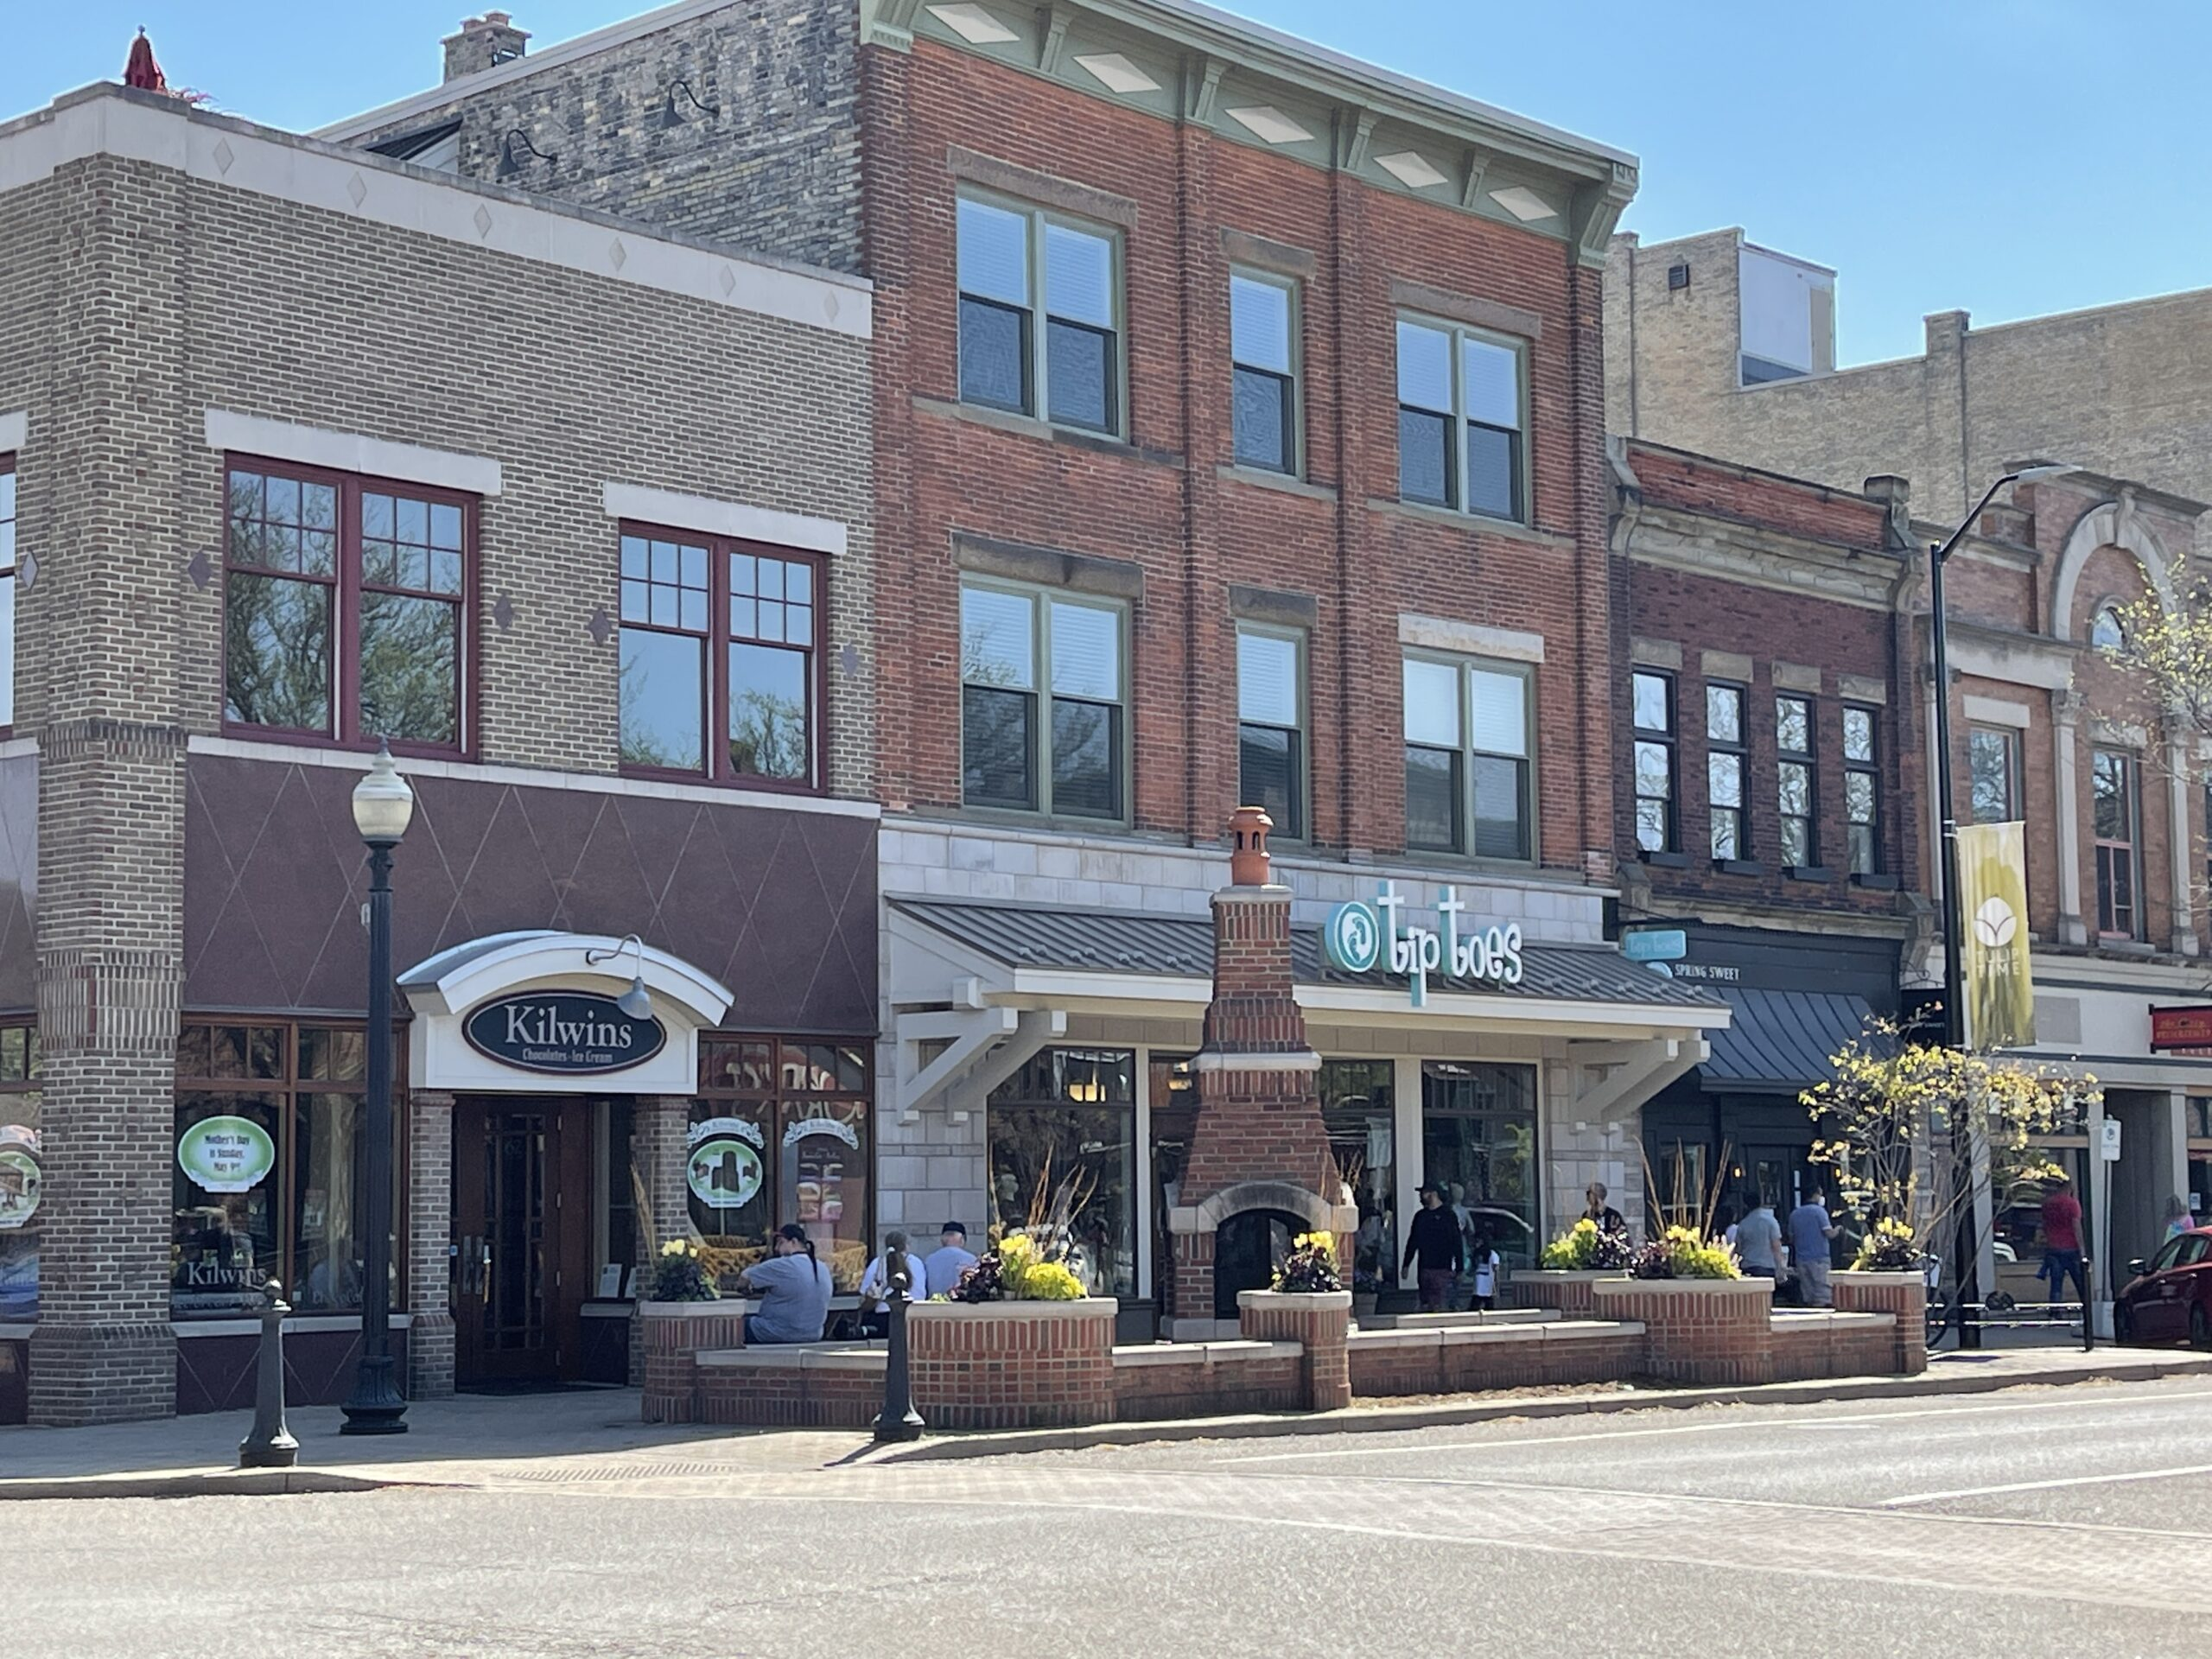 Outdoor fireplace and storefronts in downtown Holland, MI